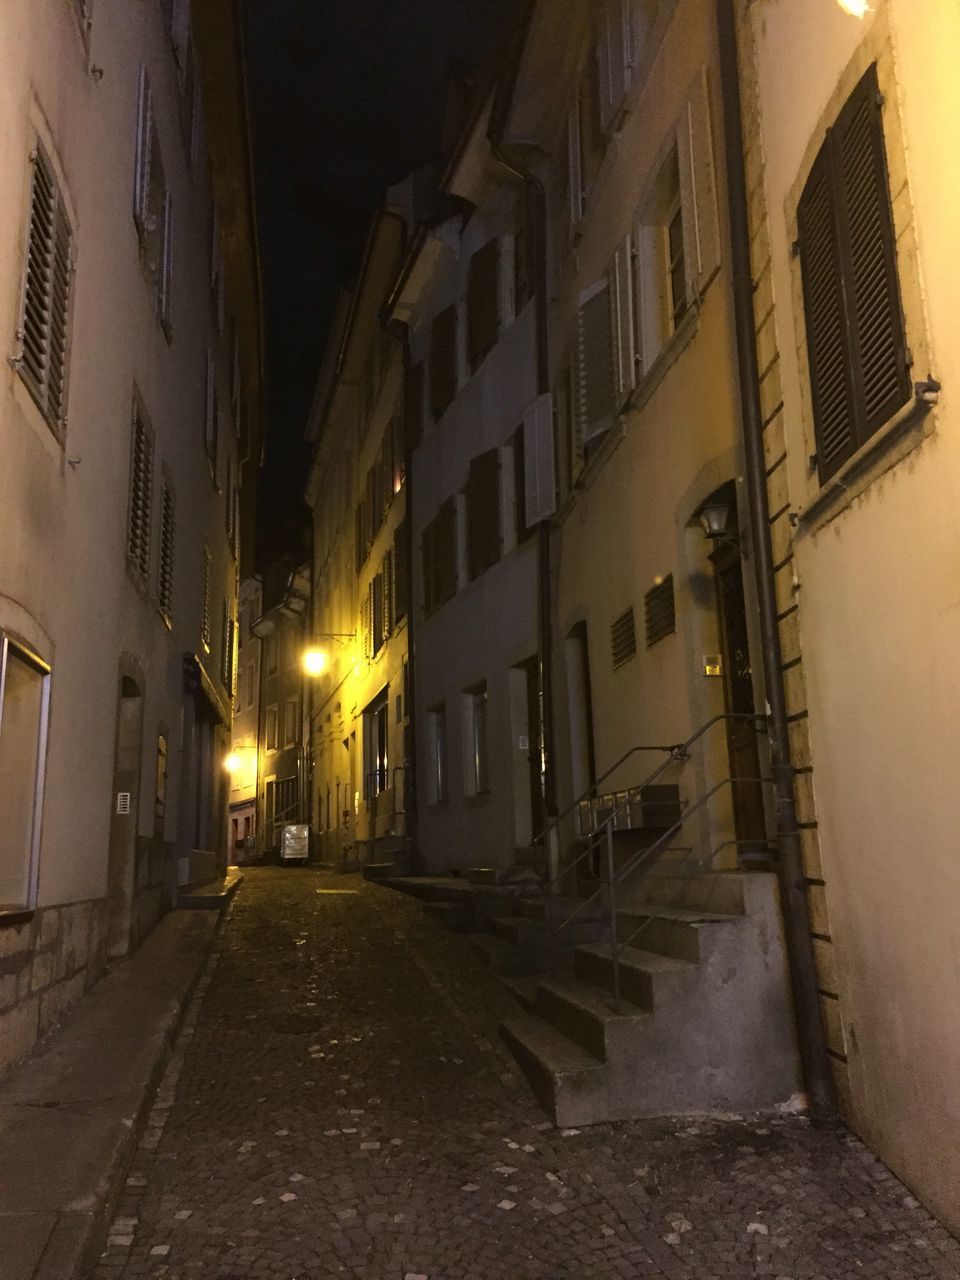 architecture, building exterior, the way forward, illuminated, built structure, alley, night, no people, walkway, outdoors